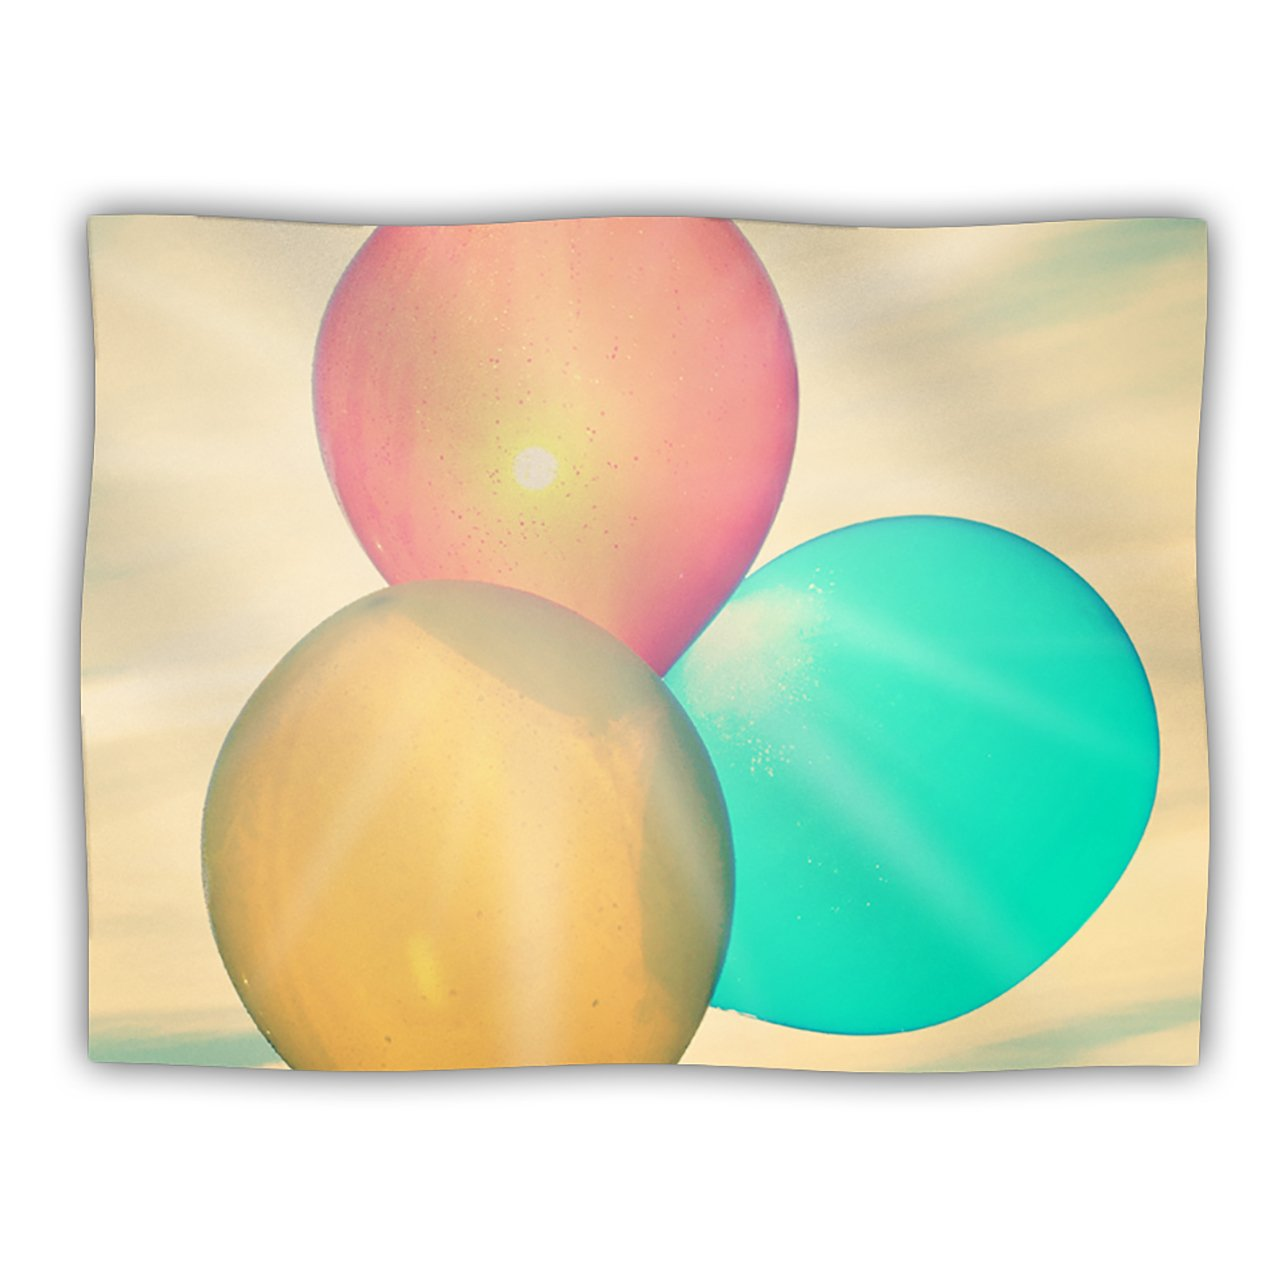 Kess InHouse Robin Dickinson Balloons Tan Clouds Pet Dog Blanket, 60 by 50-Inch